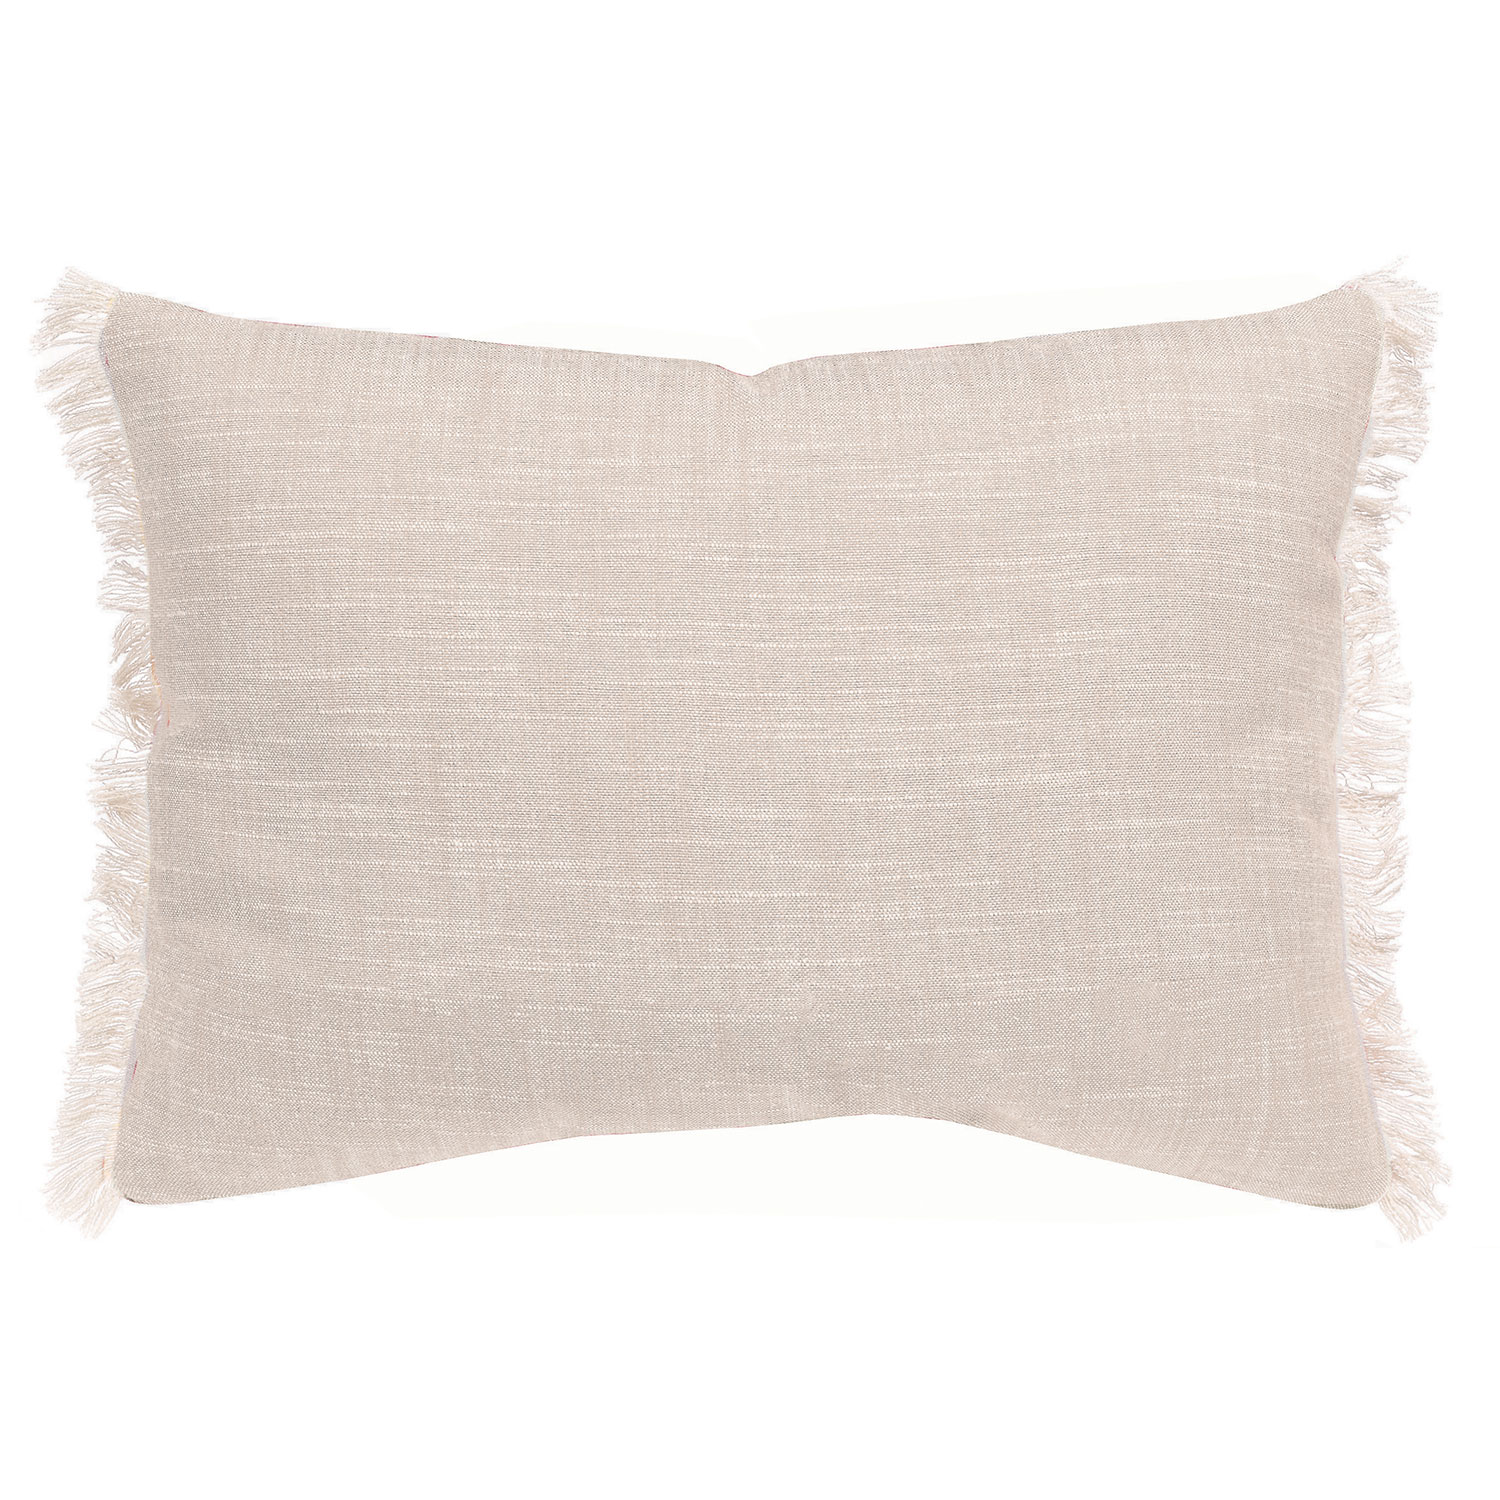 Coussin  en coton ficelle 30 x 50 (photo)